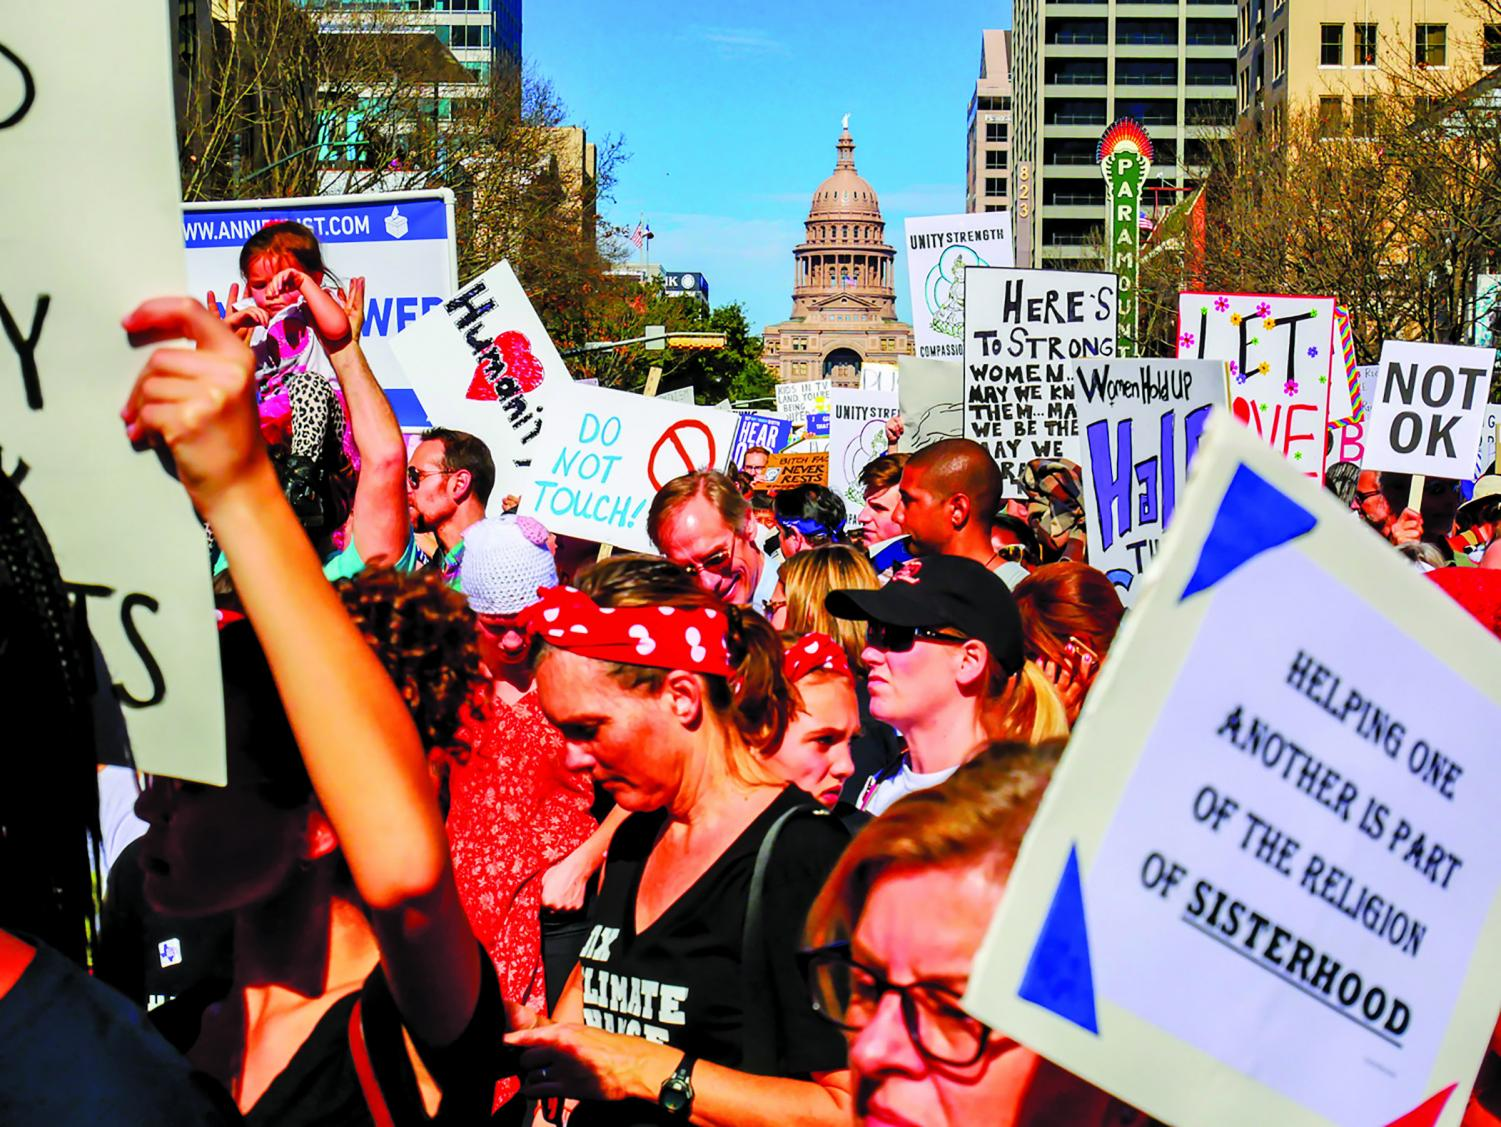 Austinites gathered for the Women's March back in 2017. The Women's March dates back to 1908 and takes place in multiple cities.